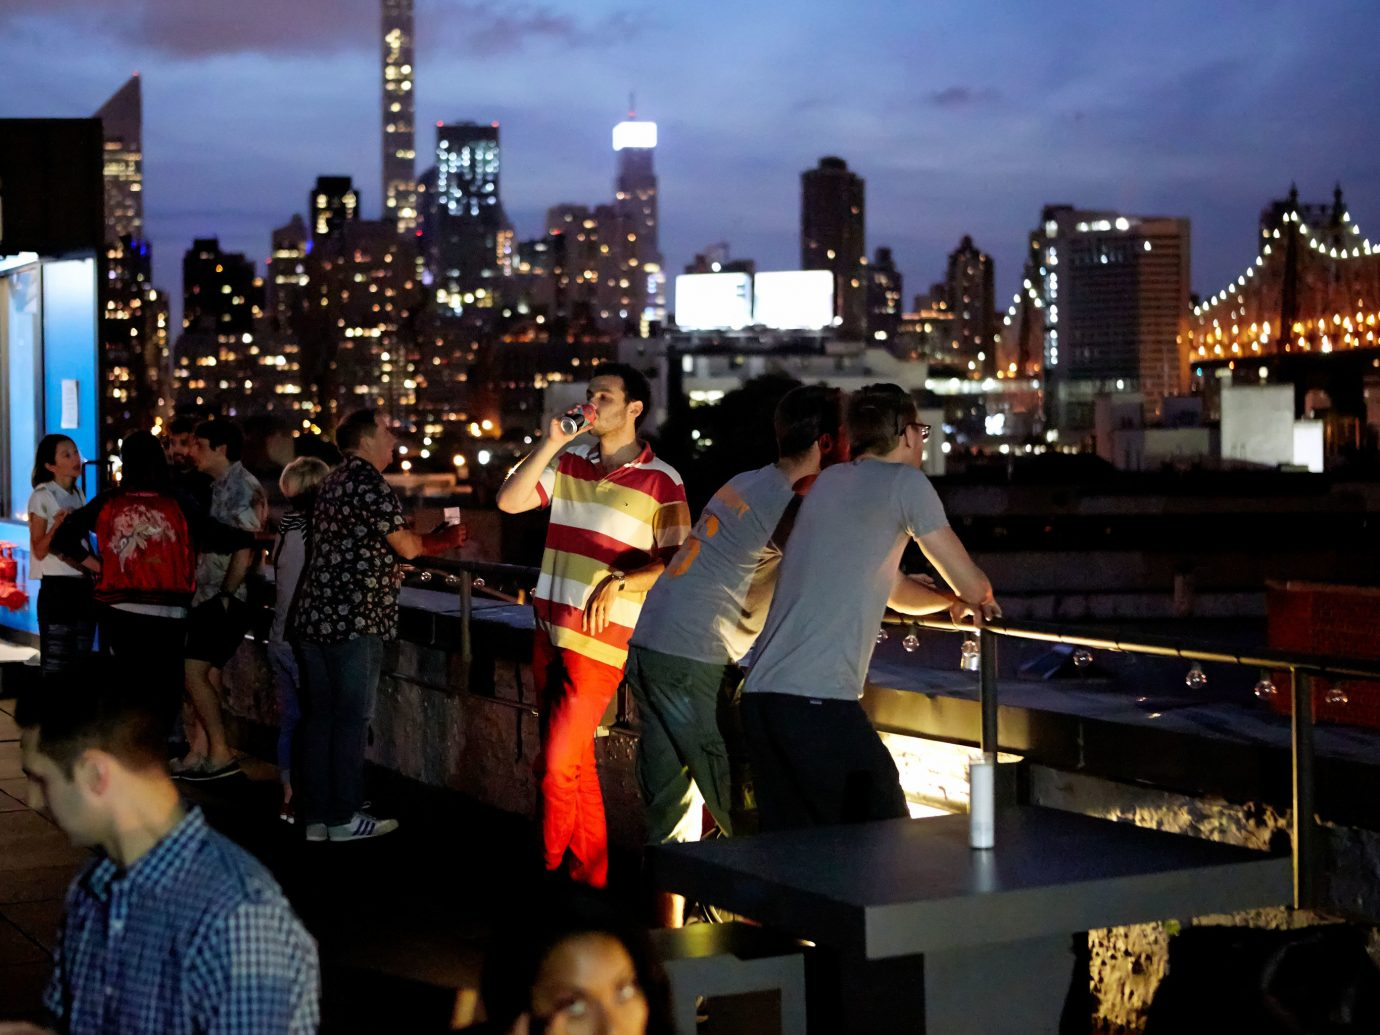 Hotels sky outdoor person crowd City night human settlement evening